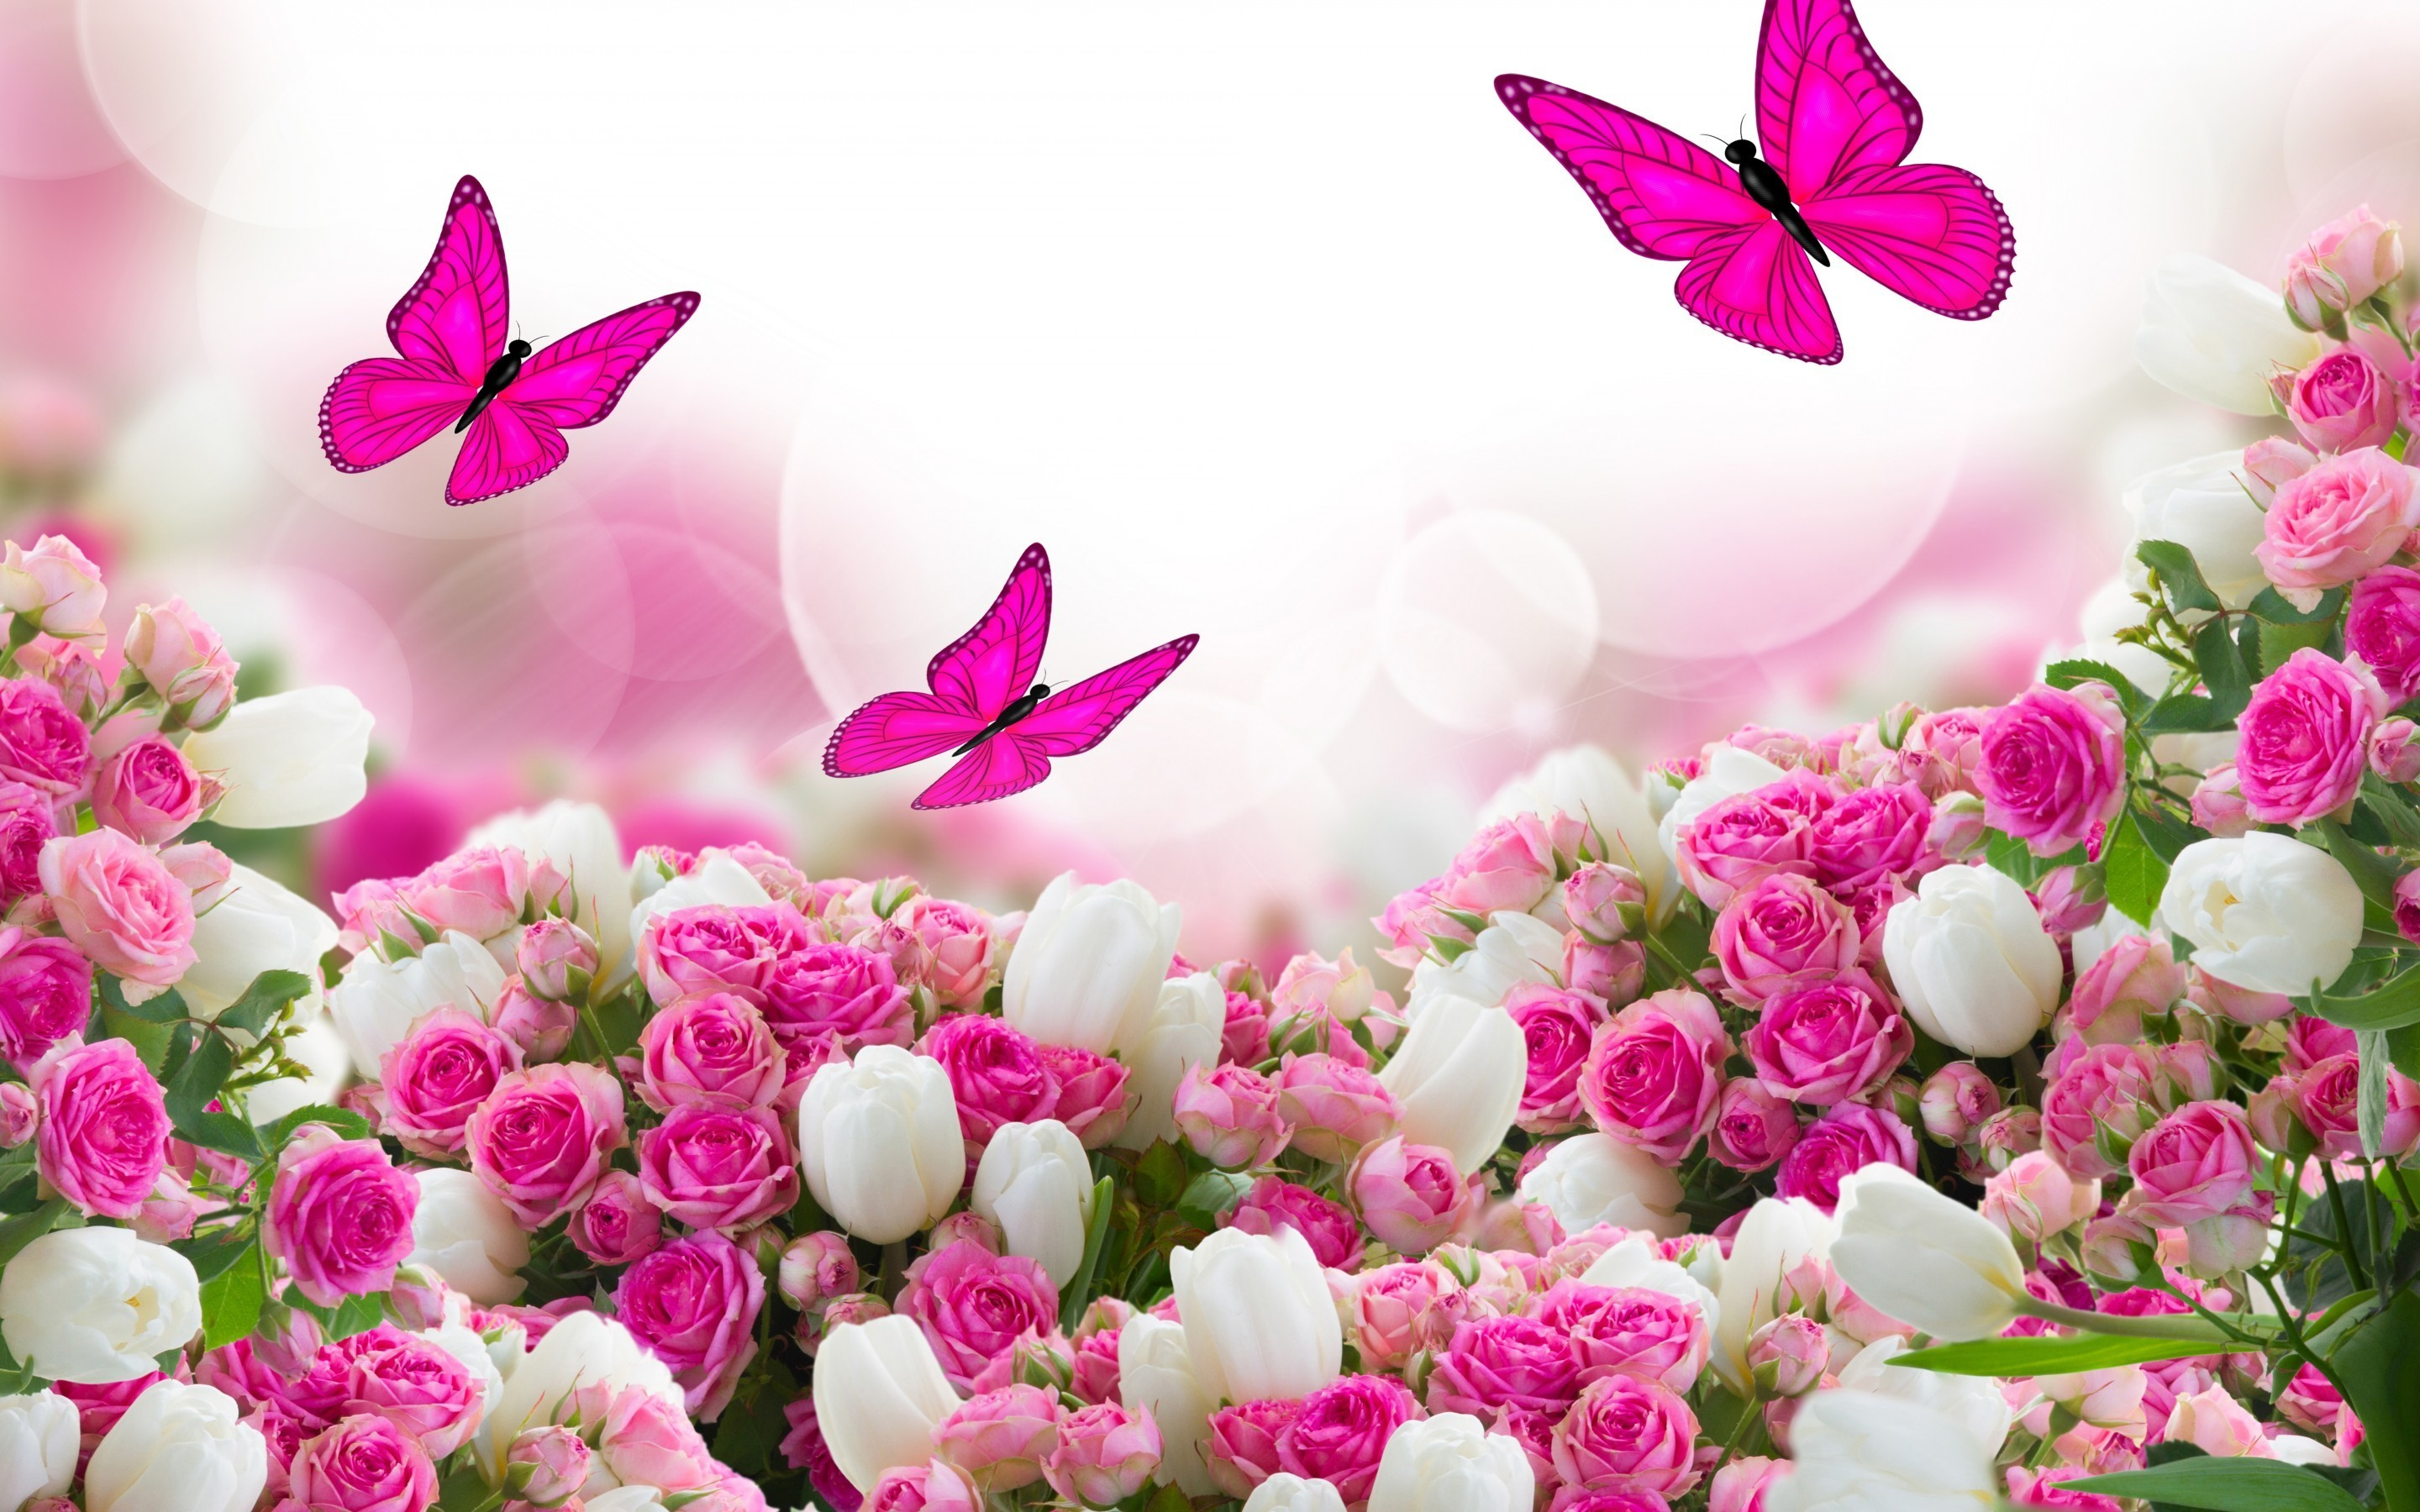 Free Download 60 Rose Flowers Wallpapers On Wallpaperplay 2880x1800 For Your Desktop Mobile Tablet Explore 52 Pictures Of Flower Wallpaper Flowers Wallpapers Spring Flower Pictures Wallpaper Nice Pictures Of Flowers Wallpapers